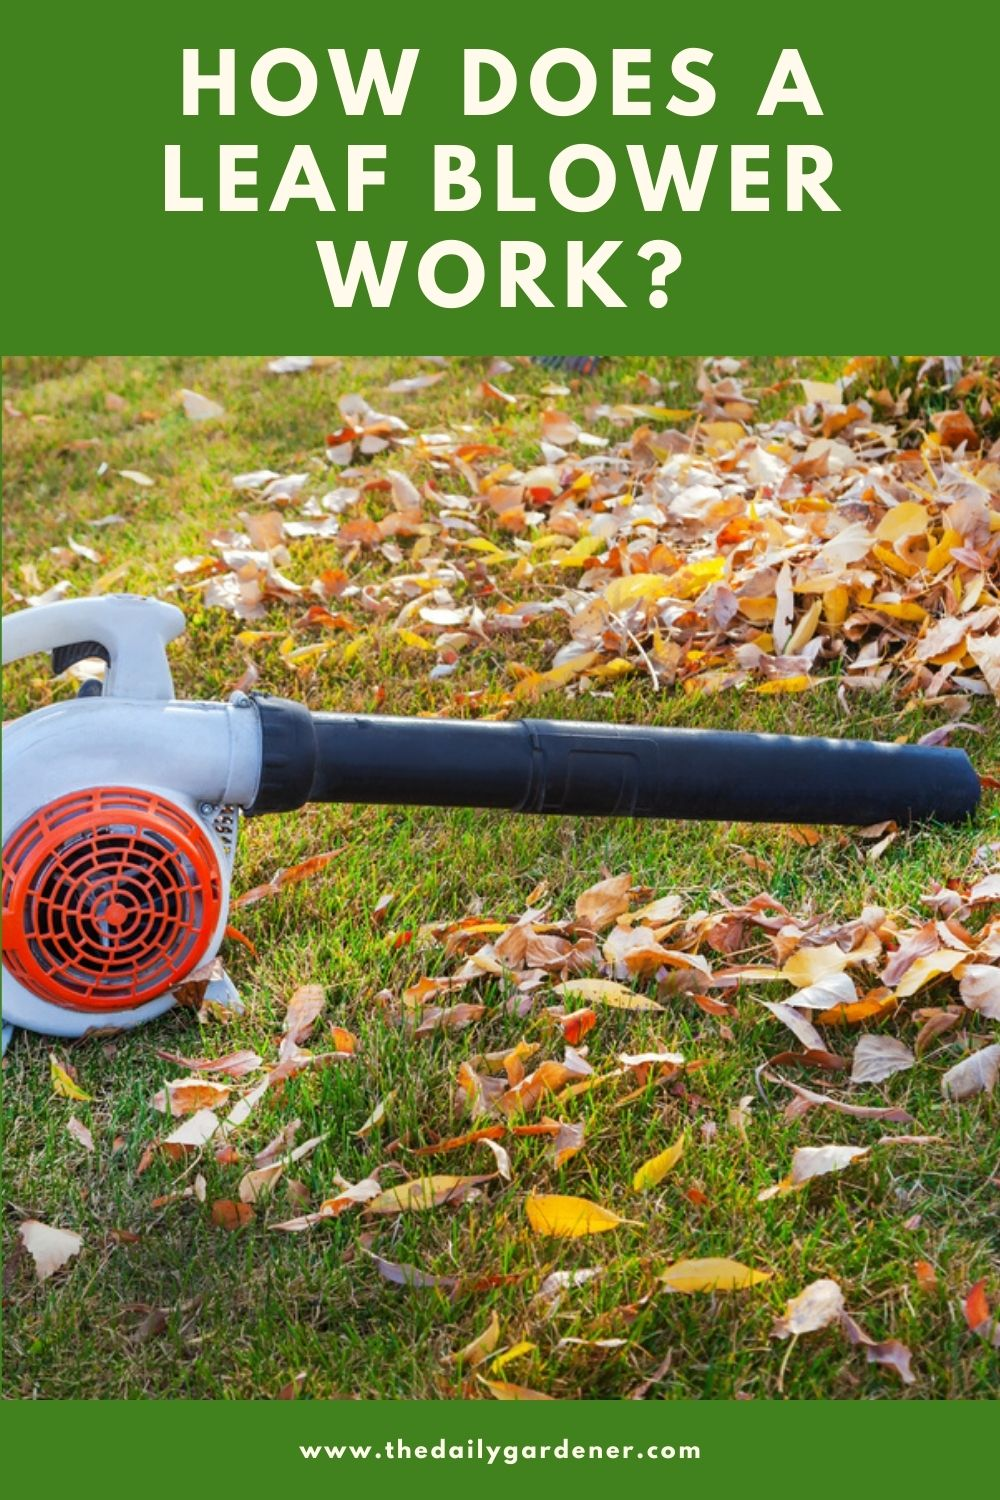 How Does a Leaf Blower Work 2